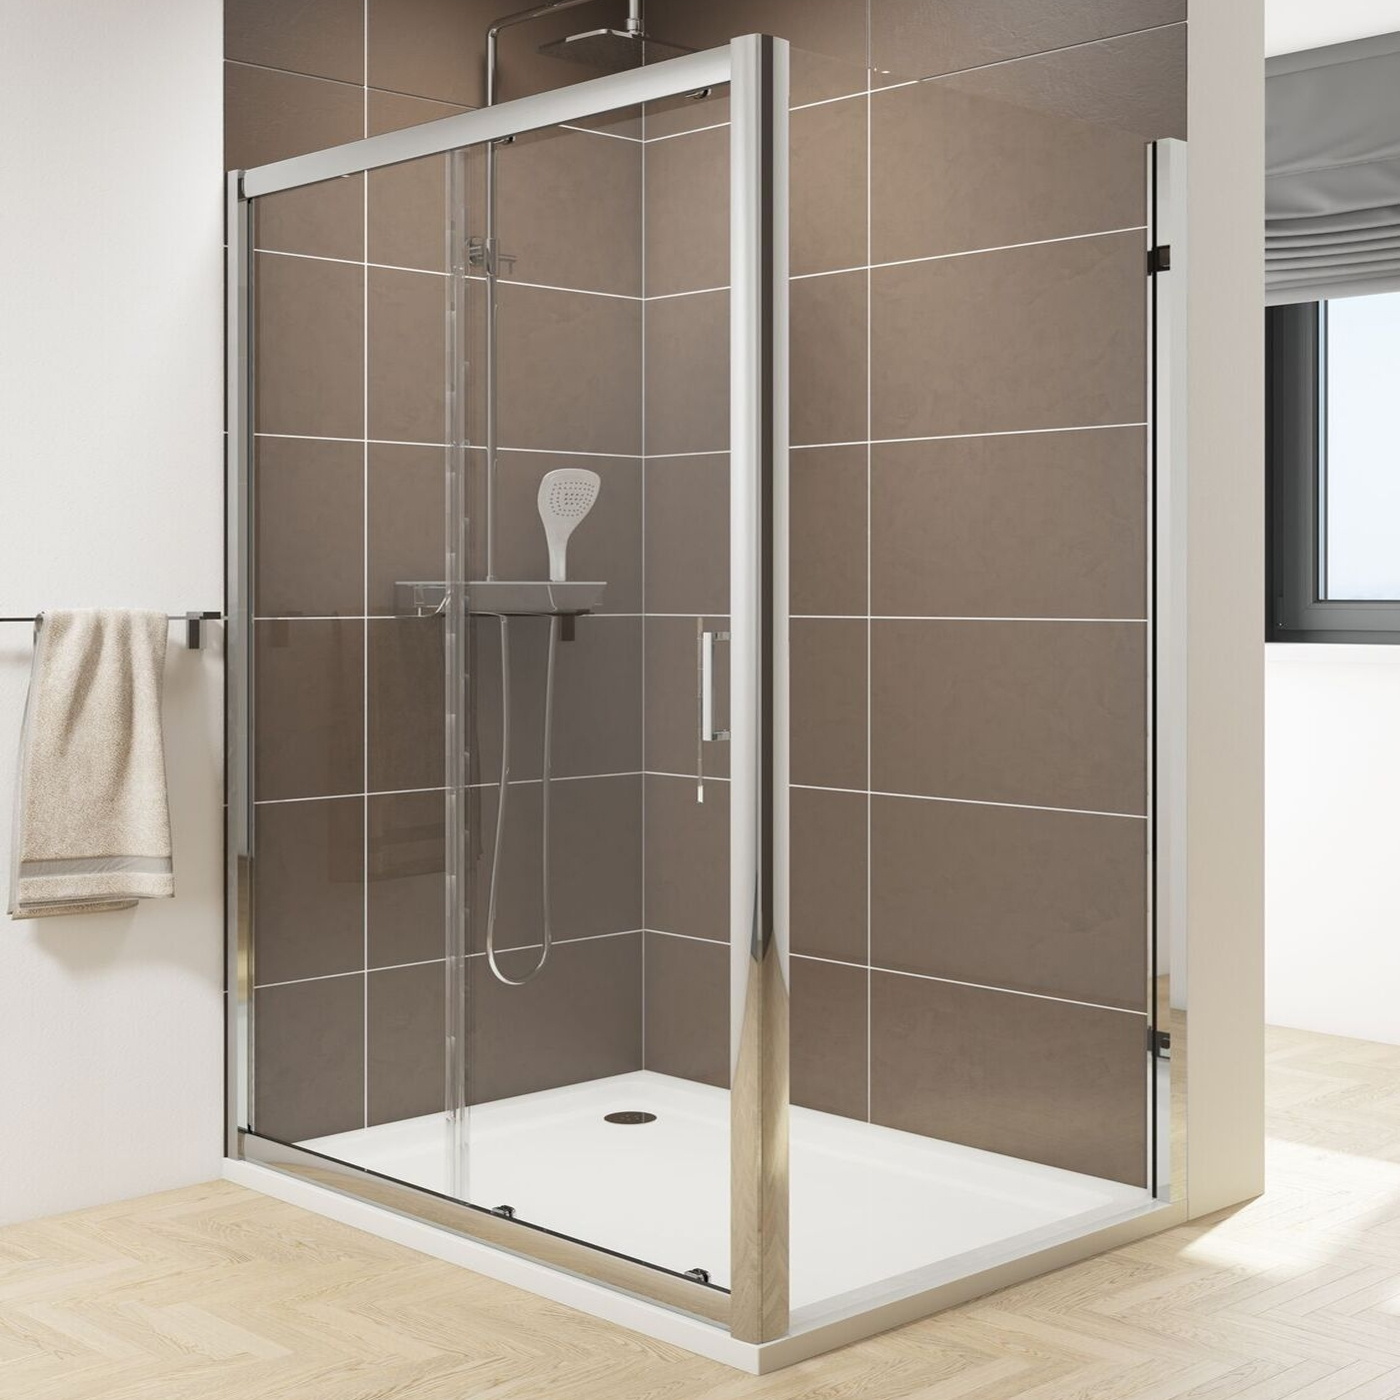 Cali Seis Sliding Shower Door - 1000mm Wide - 6mm Glass